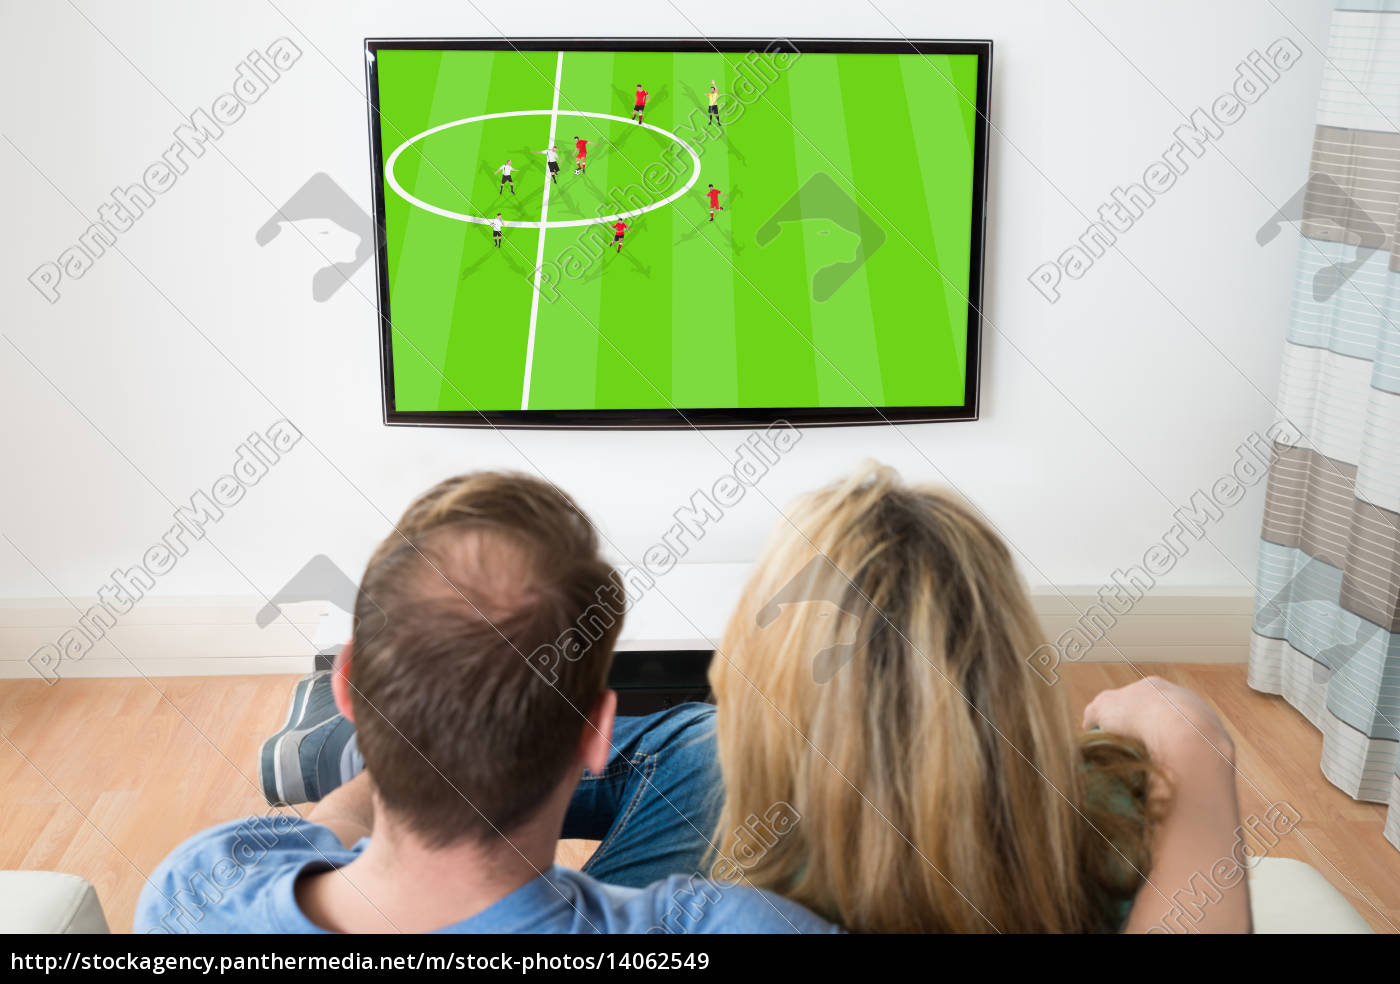 couple, watching, television - 14062549